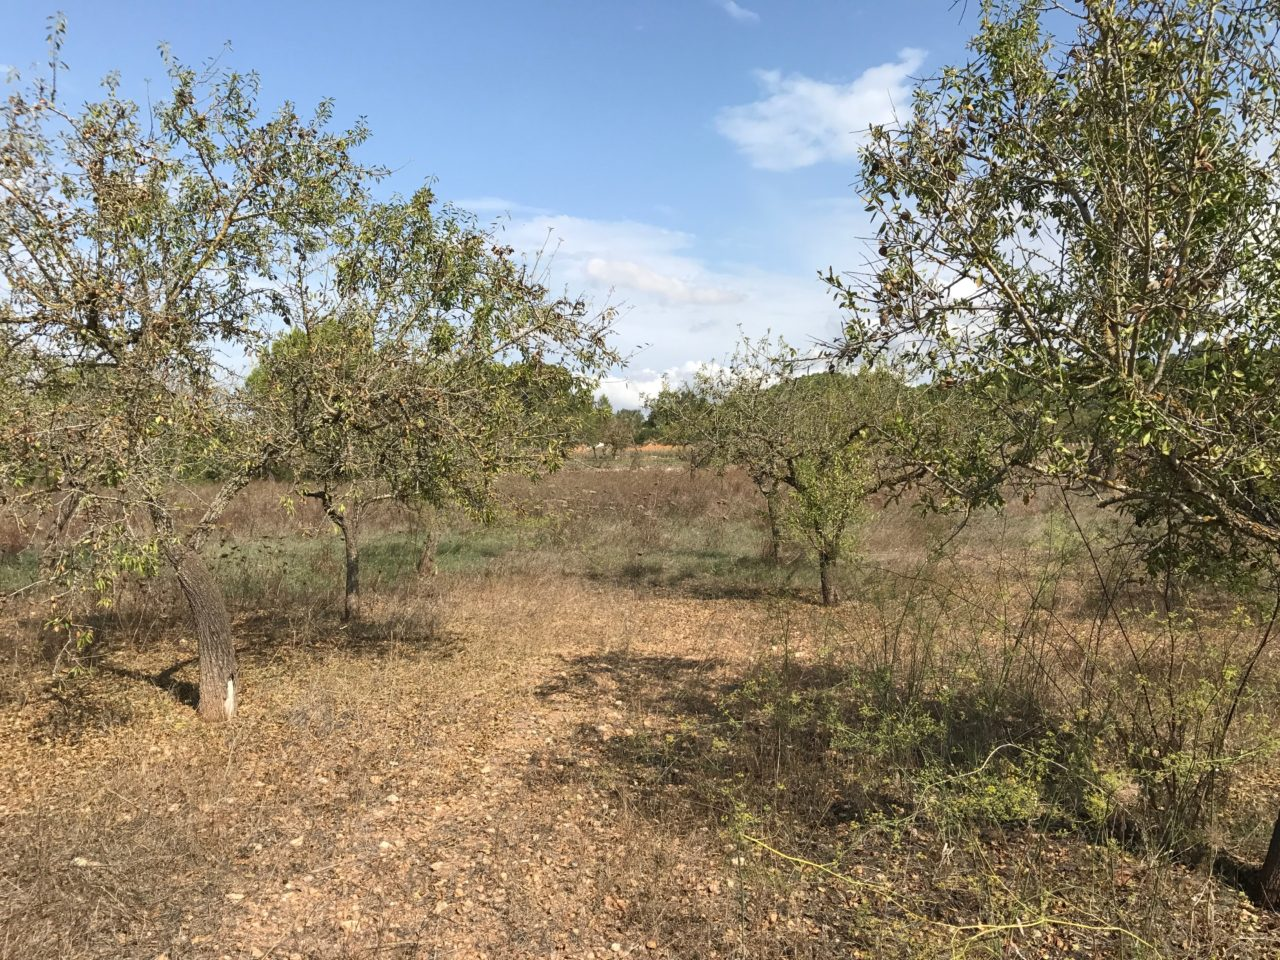 Urban Property Plot With Dry Grass And Trees